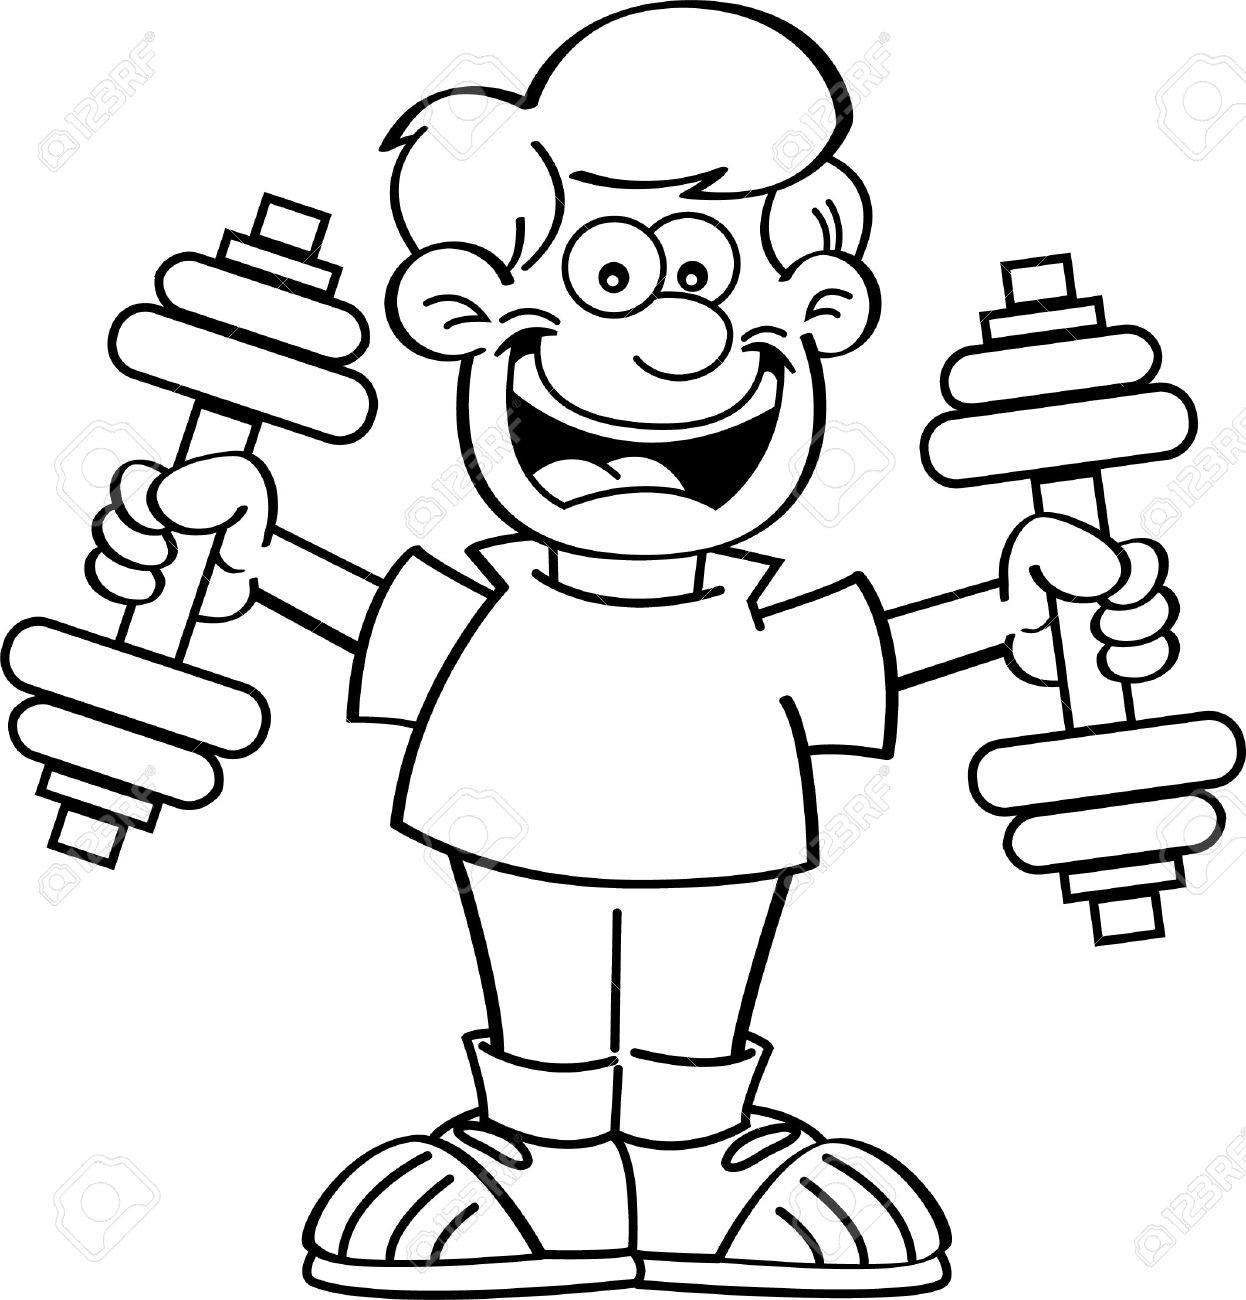 Exercise Clipart Black And White 4 Clipart Station